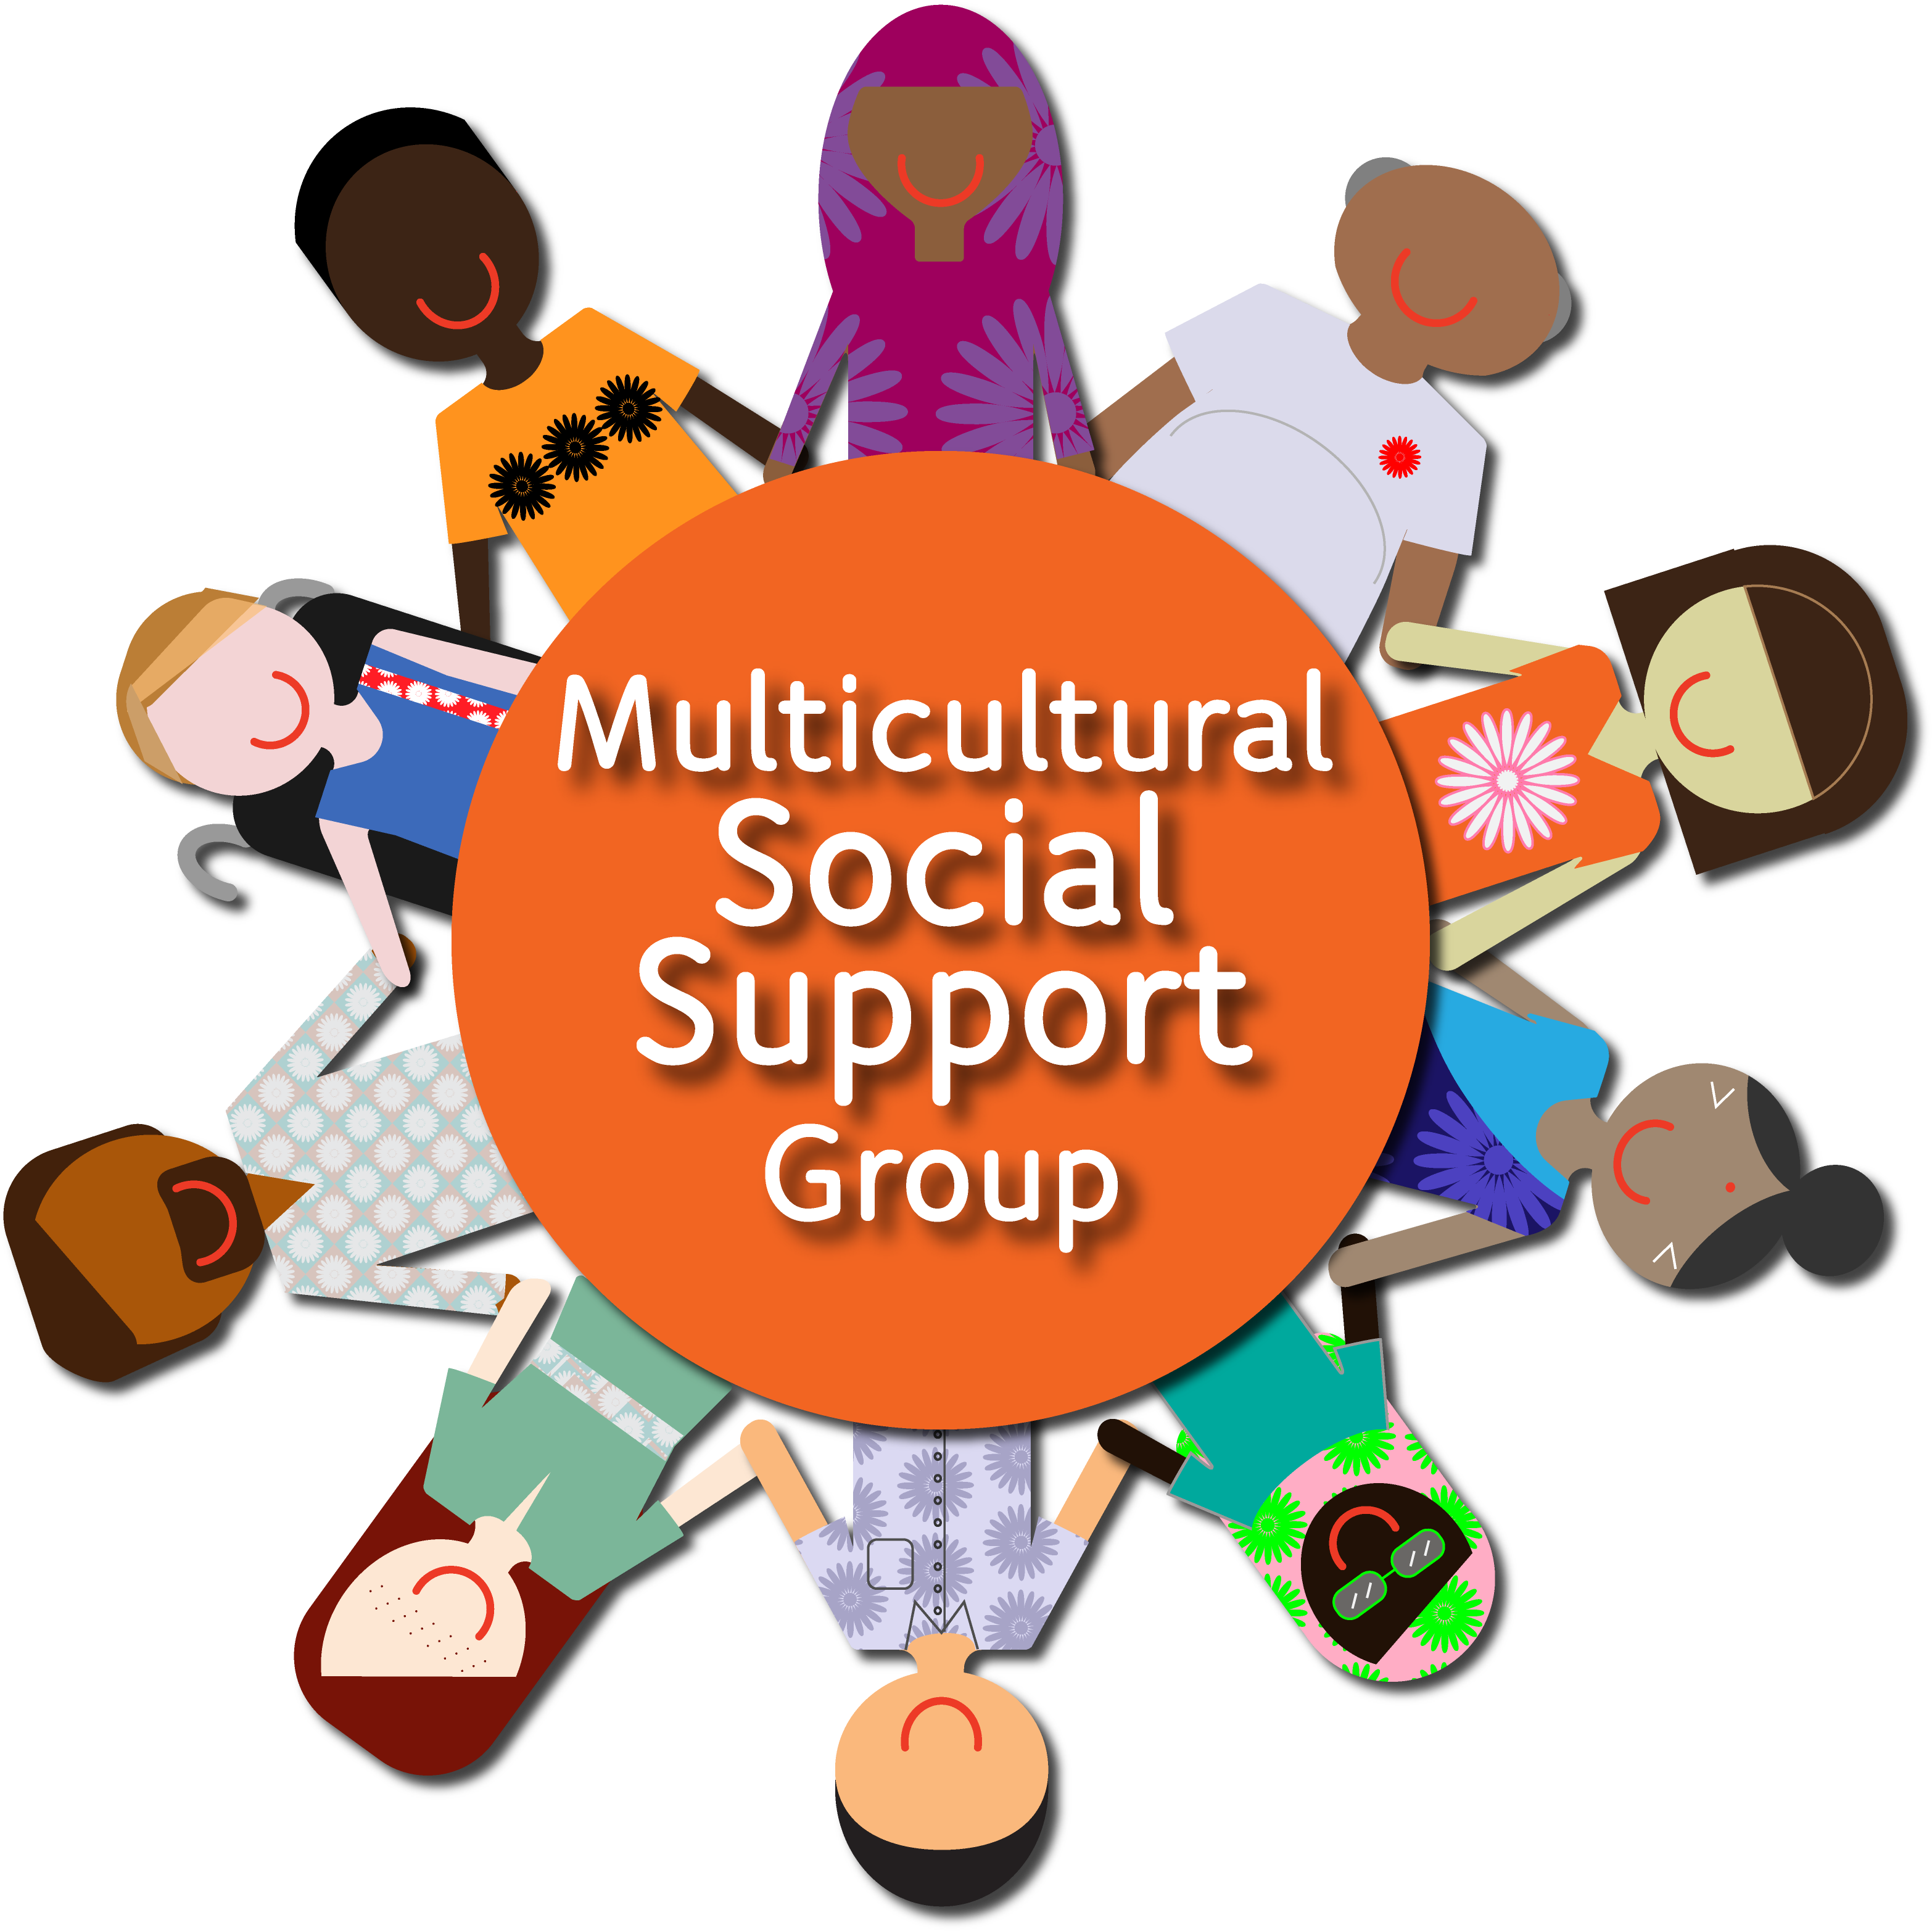 Women s support group clipart clip freeuse Multicultural Social Support Group - Support Group ... clip freeuse